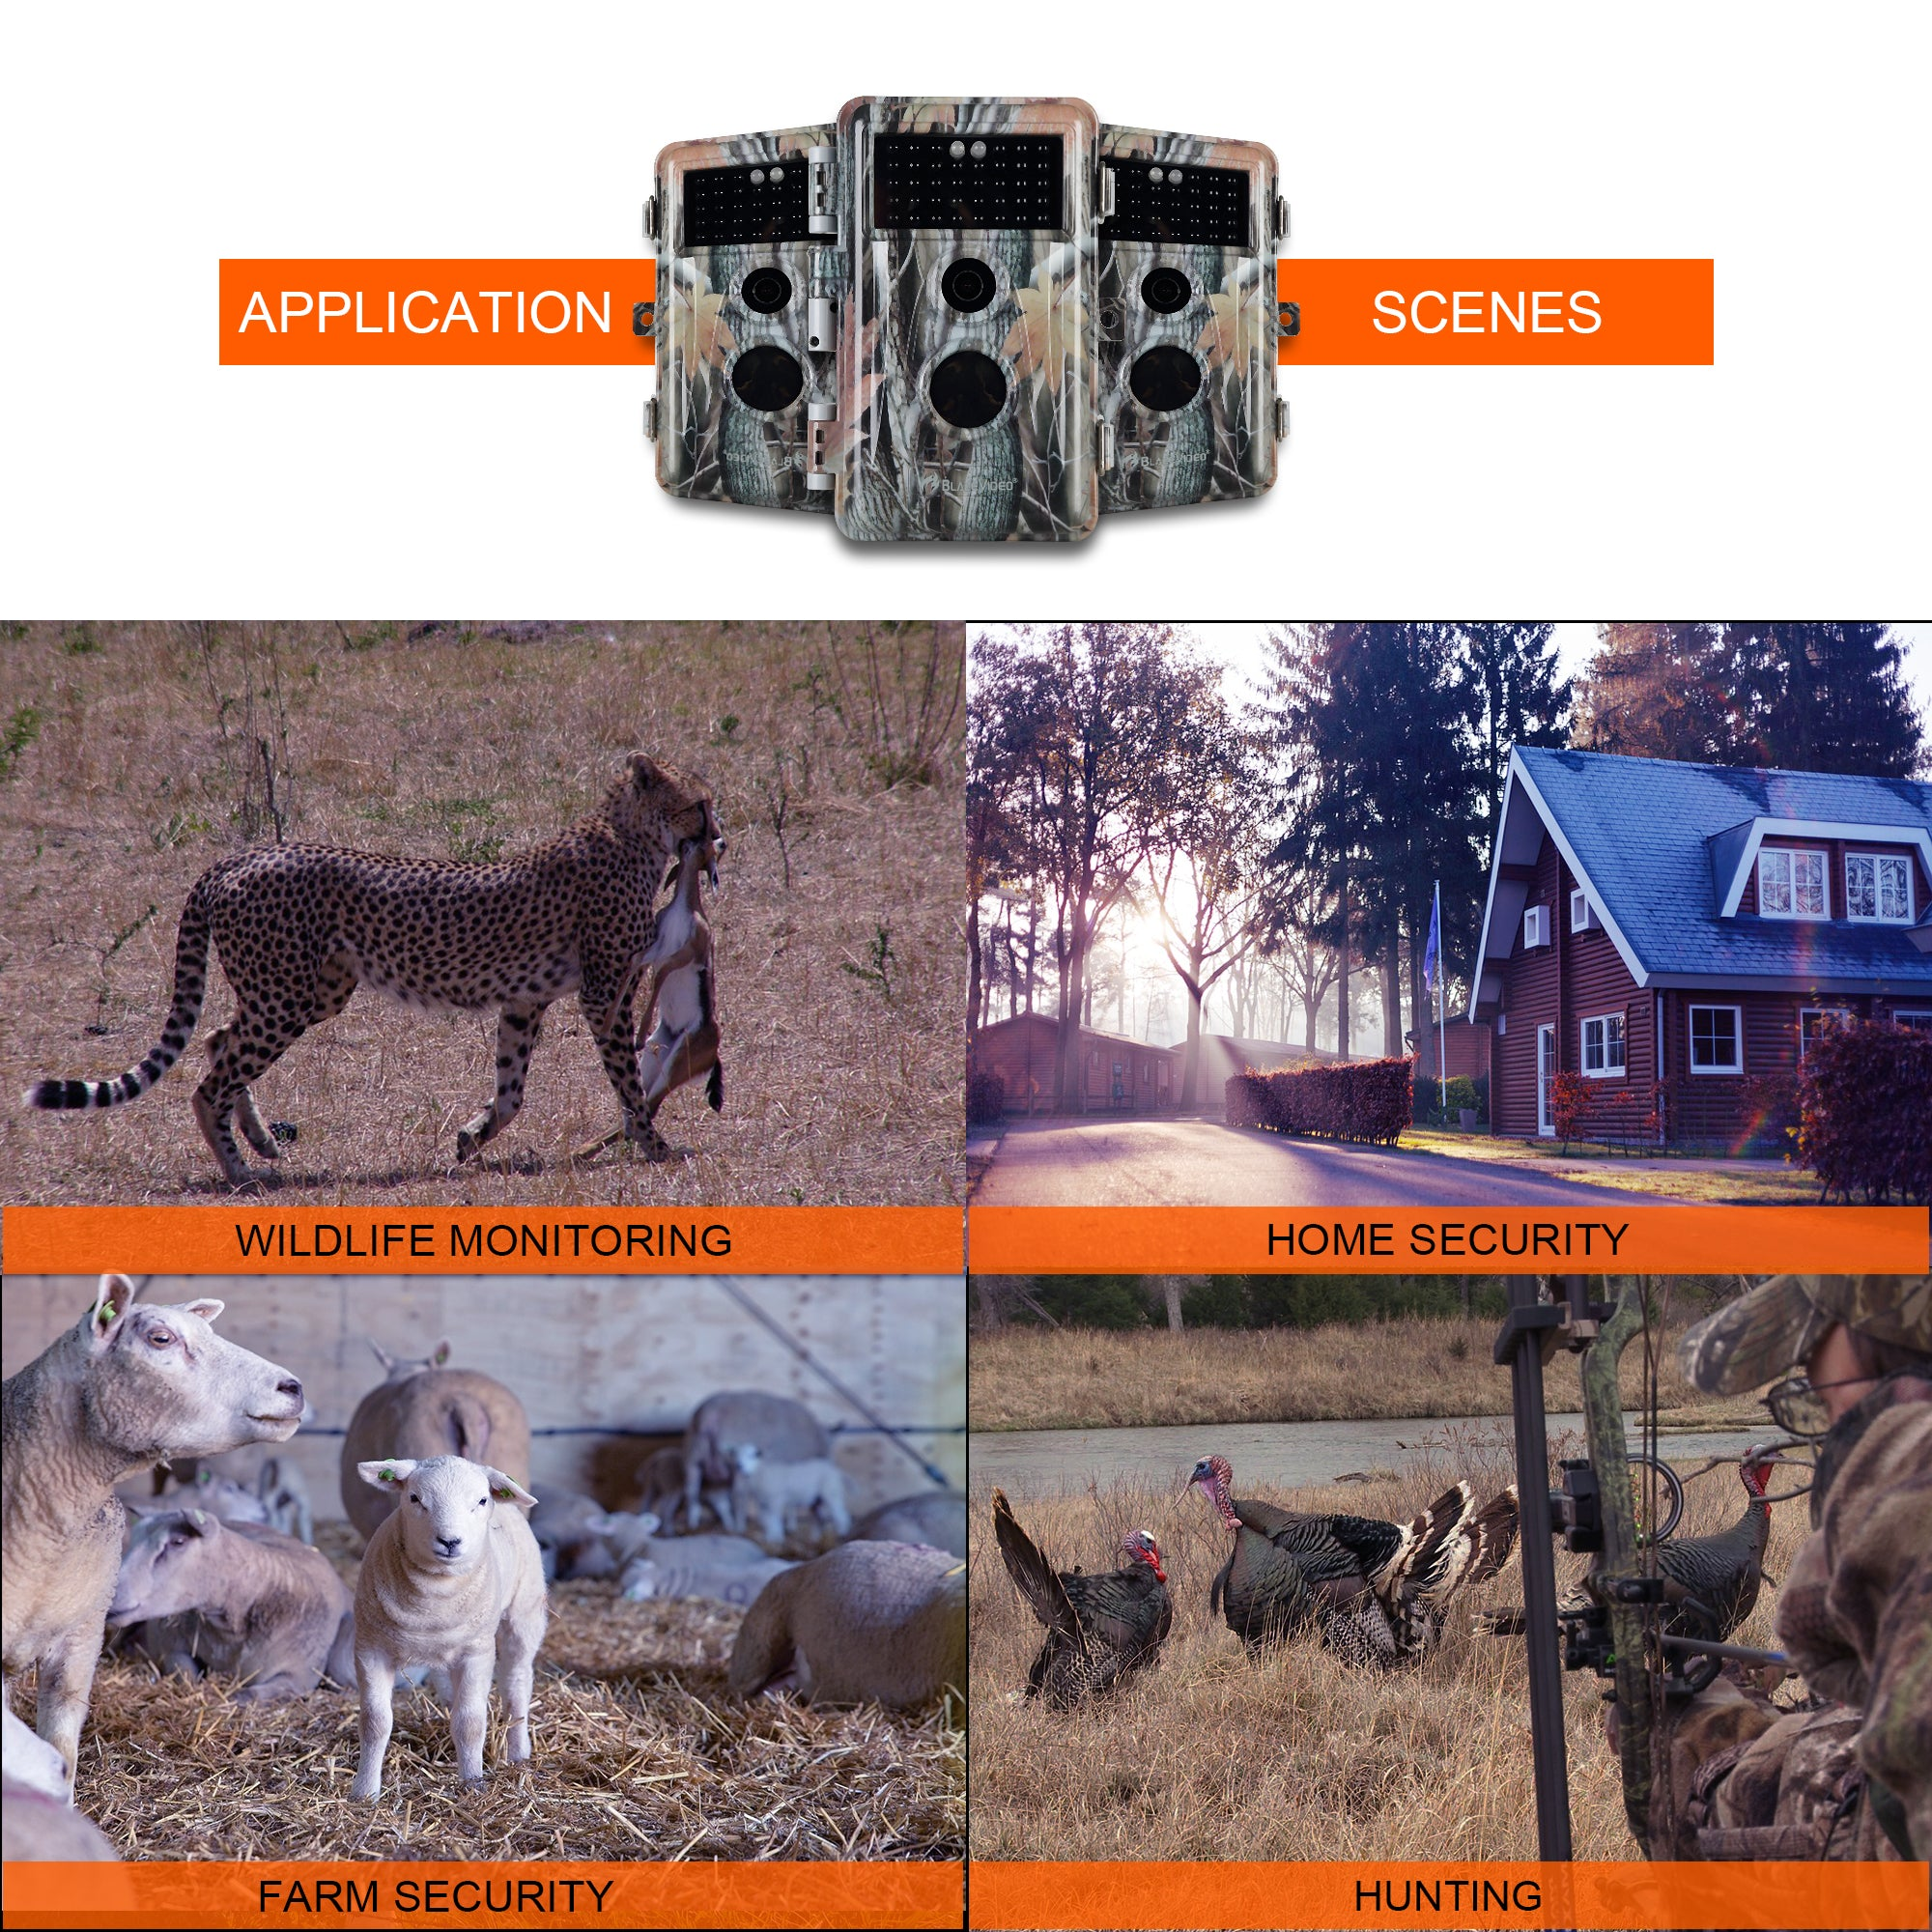 Game Trail & Deer Hunting Wildlife Camera HD 20MP Photo H.264 1080P MOV/MP4 Video Motion Activated No Glow Night Version IP66 Waterproof